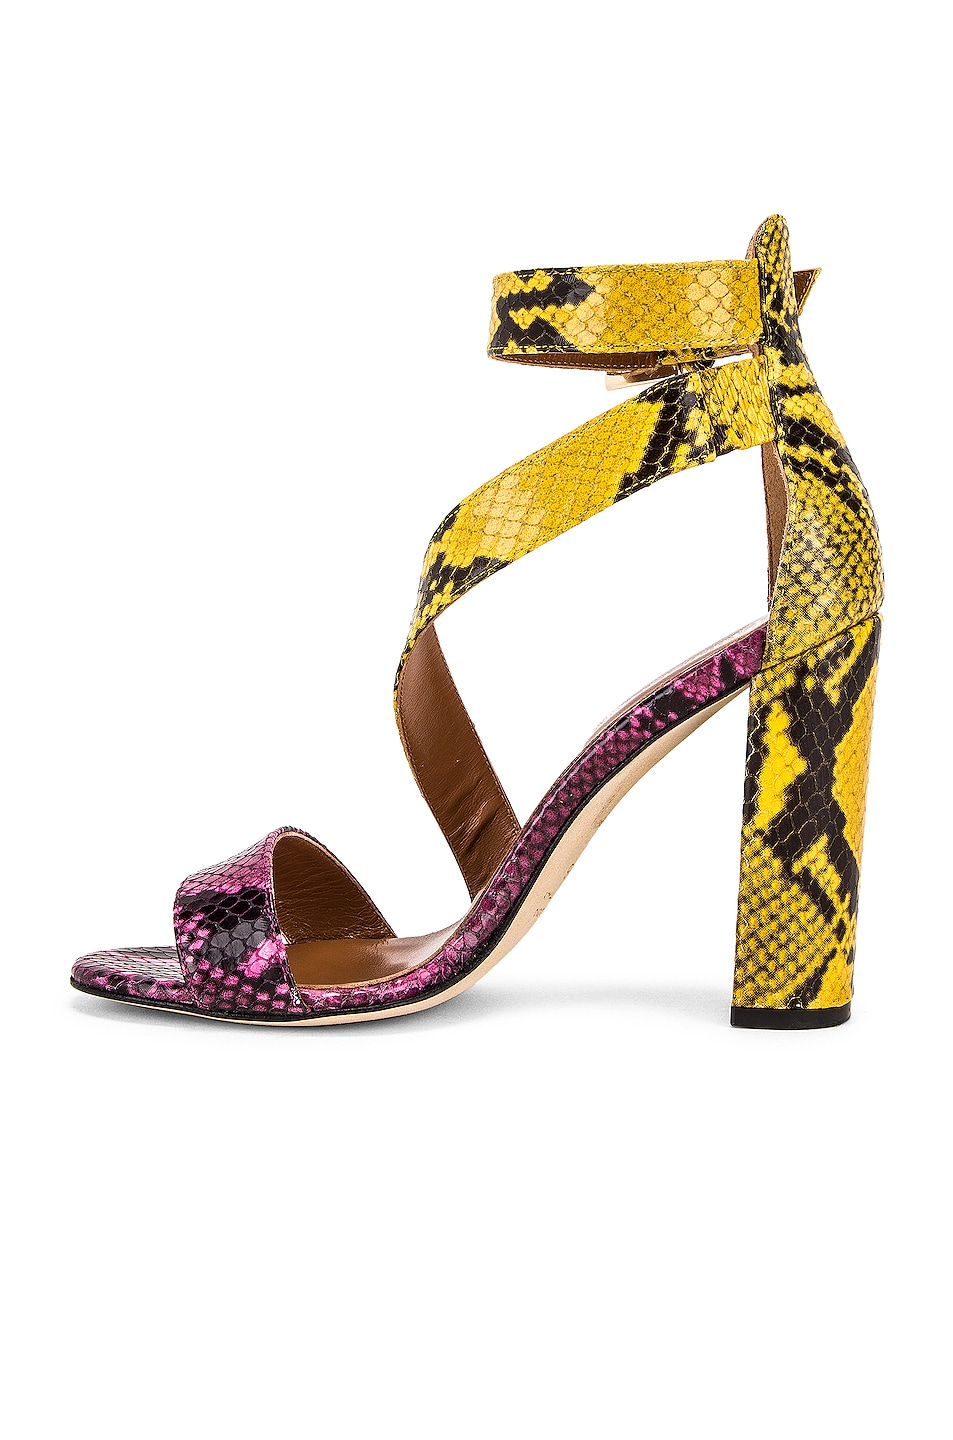 Image 5 of Paris Texas Diagonal Strap Snake 100 Sandal Heel in Fuchsia & Yellow